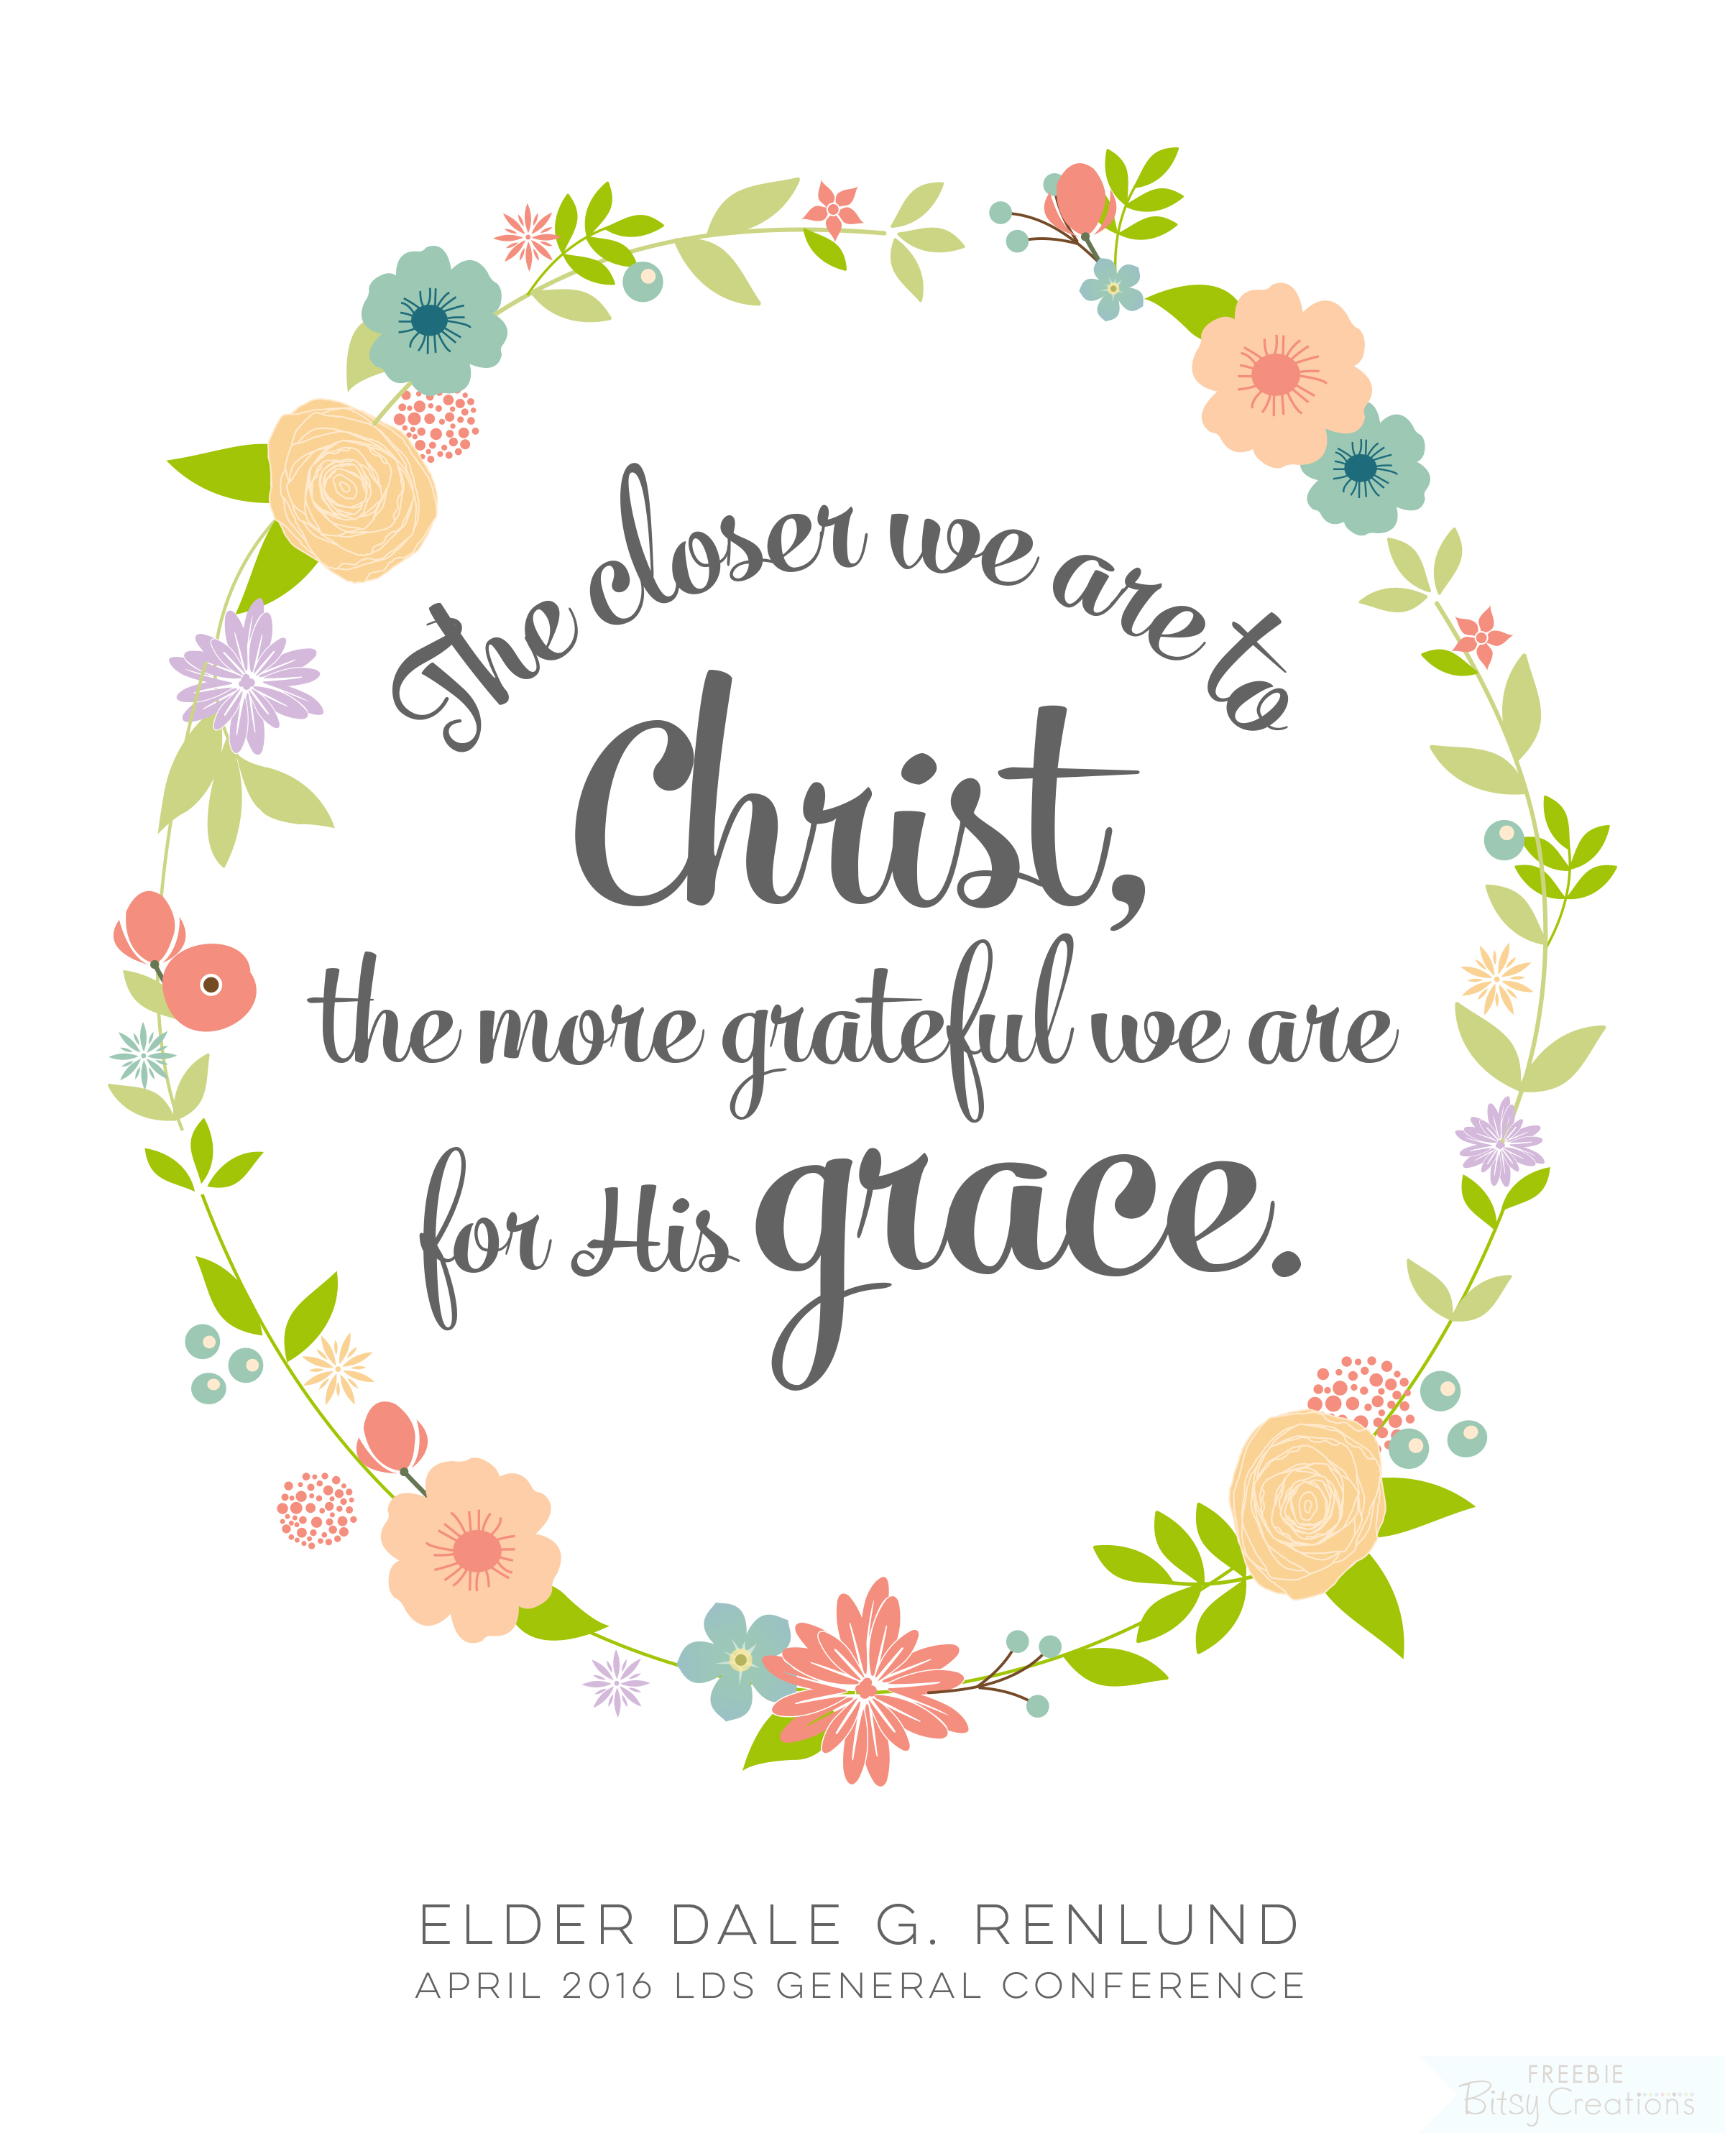 Mormon Quotes Awesome Free Printables  Quote Art From April 2016 Lds General Conference